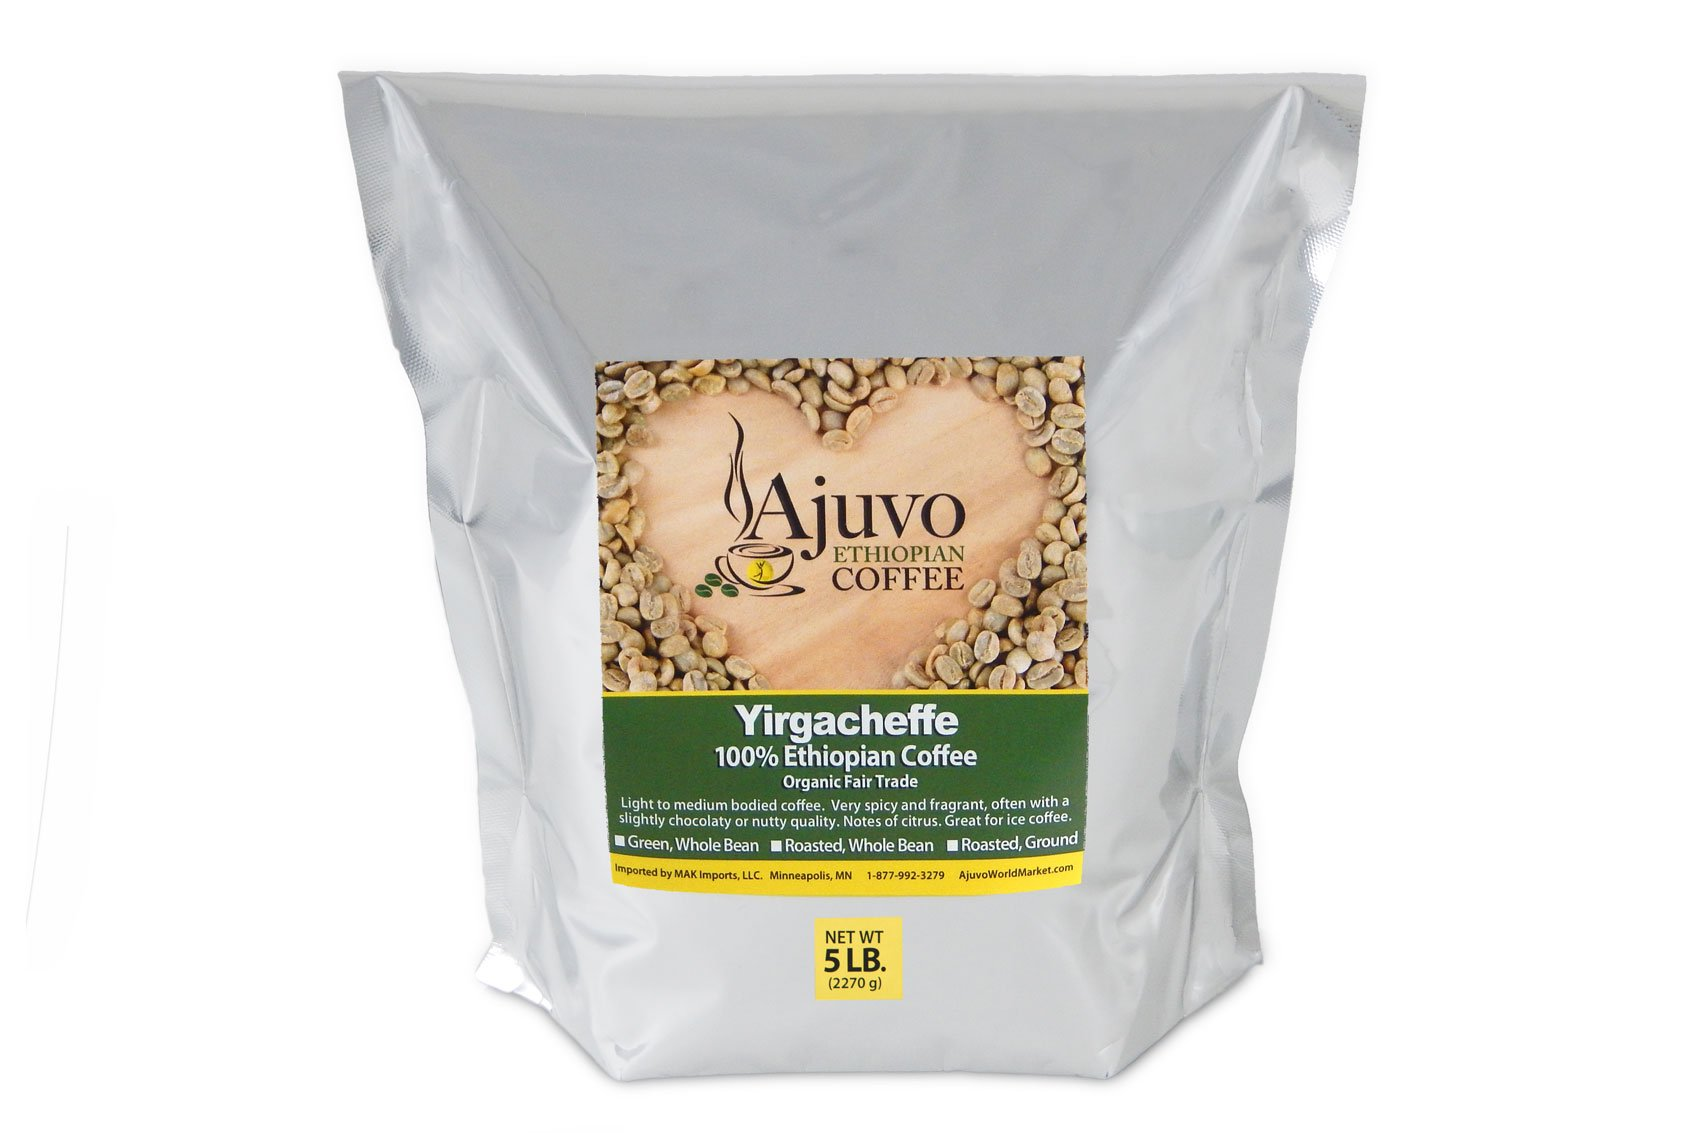 Ajuvo World Market Ethiopian Yirgacheffe Coffee - Green, Whole Bean (5lb.) by Ajuvo World Market